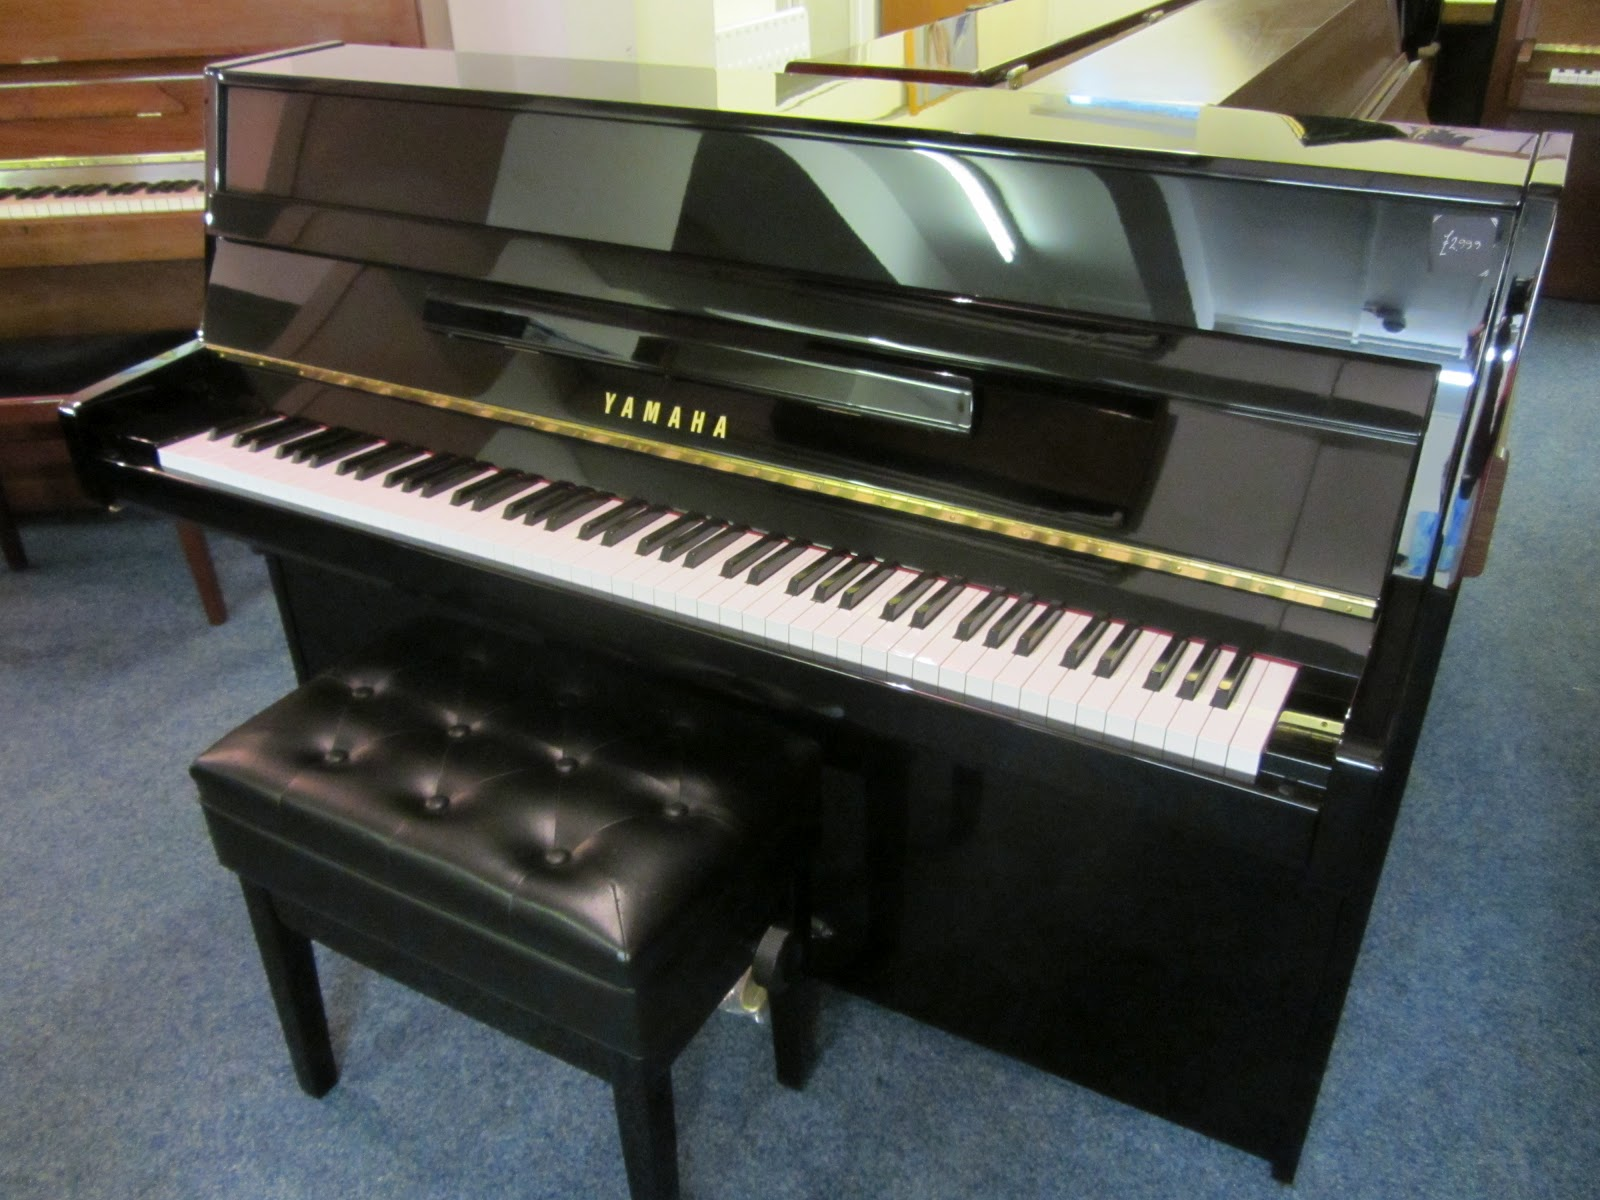 Yamaha Piano Prices Upright